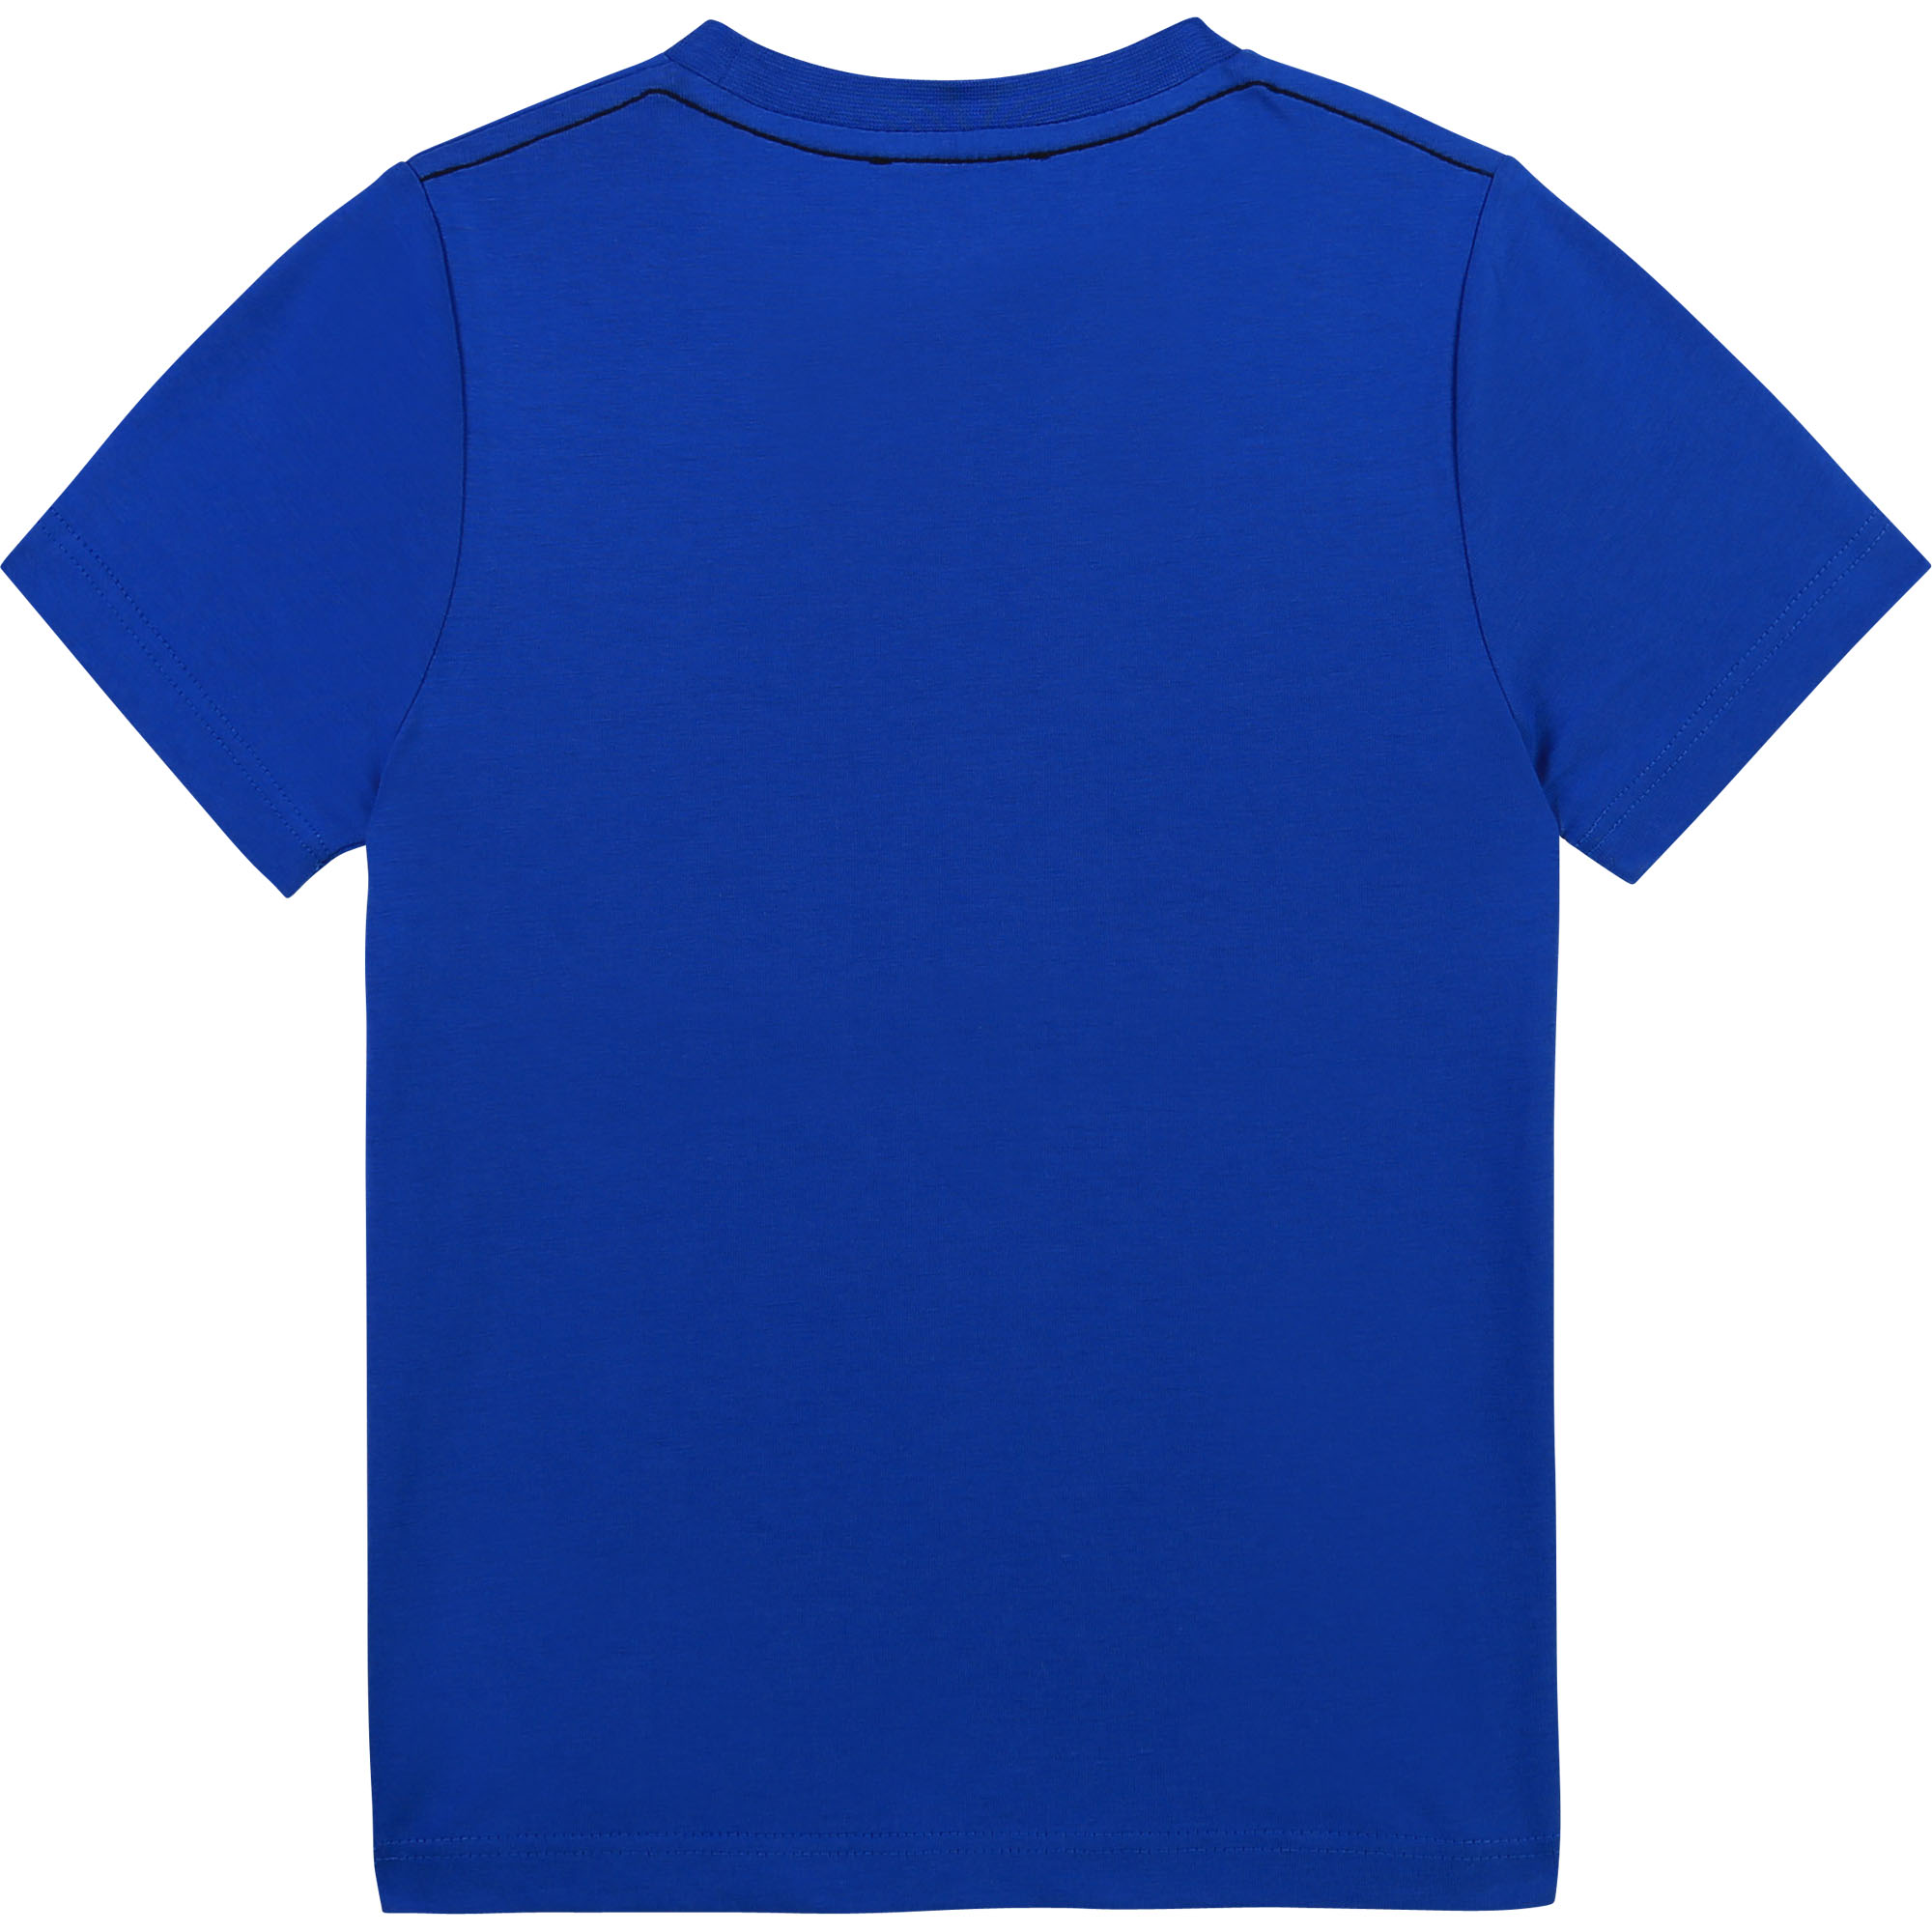 Printed cotton jersey T-shirt THE MARC JACOBS for BOY